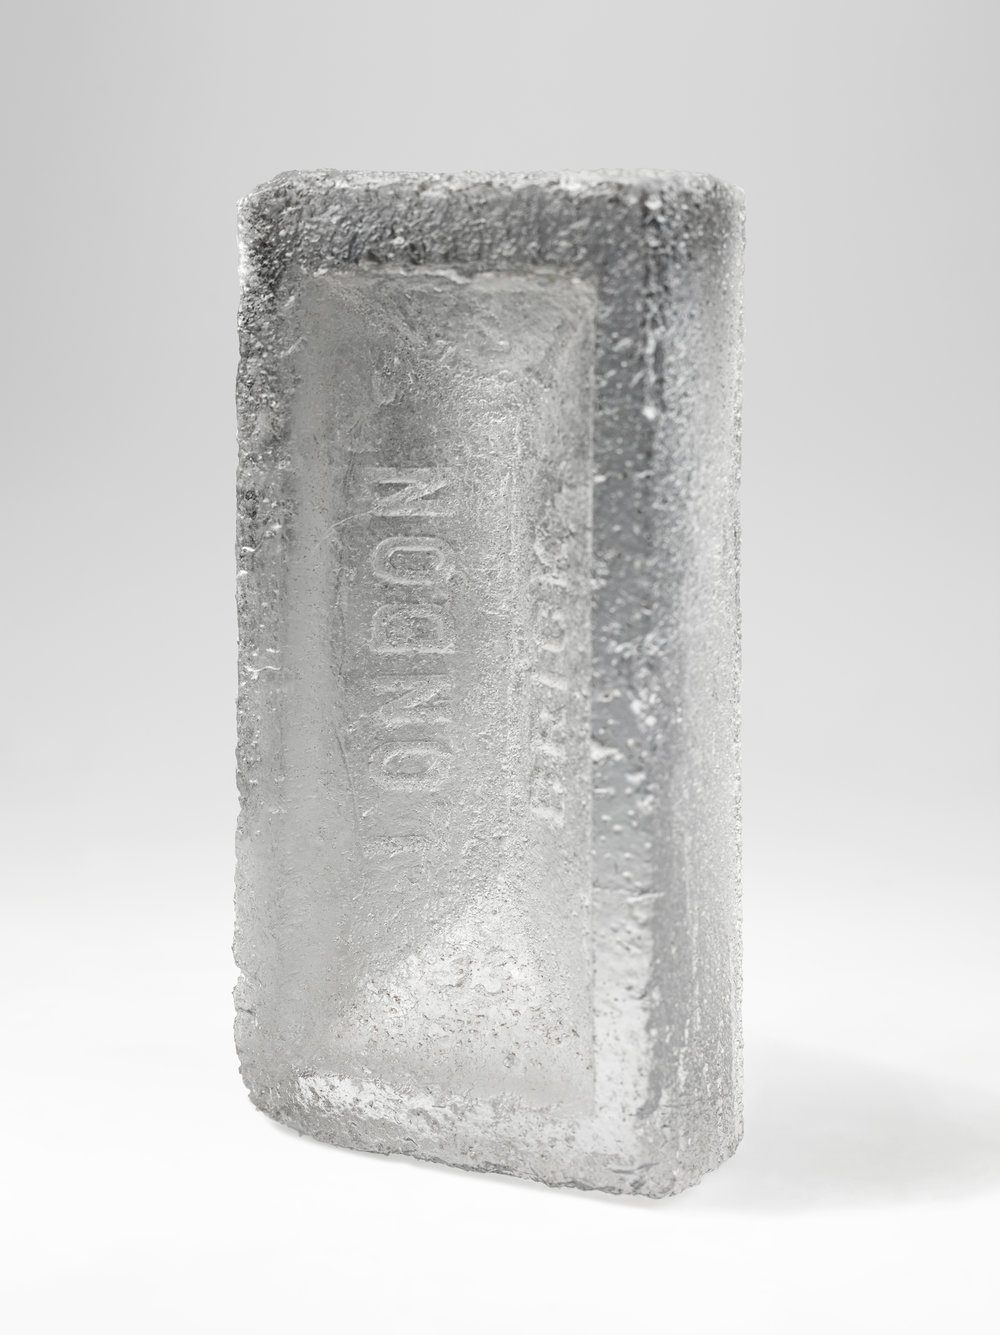 Untitled (Resin Brick) (1).jpg